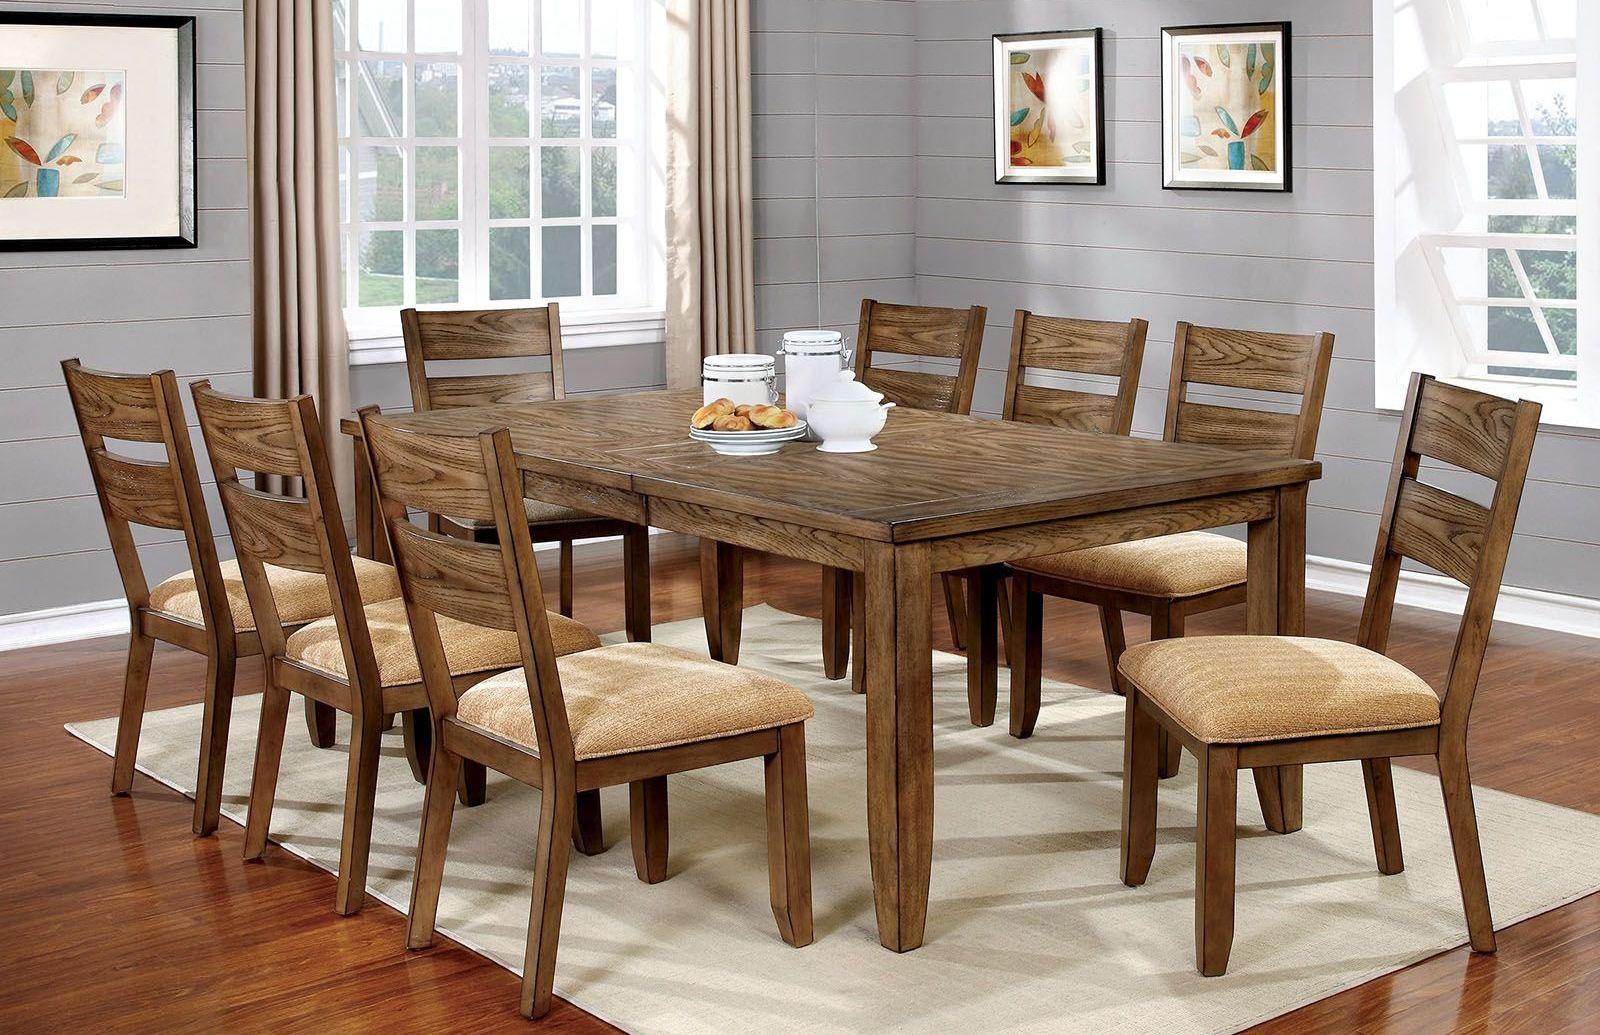 Ava light oak dining room set from furniture of america for Oak dining room set